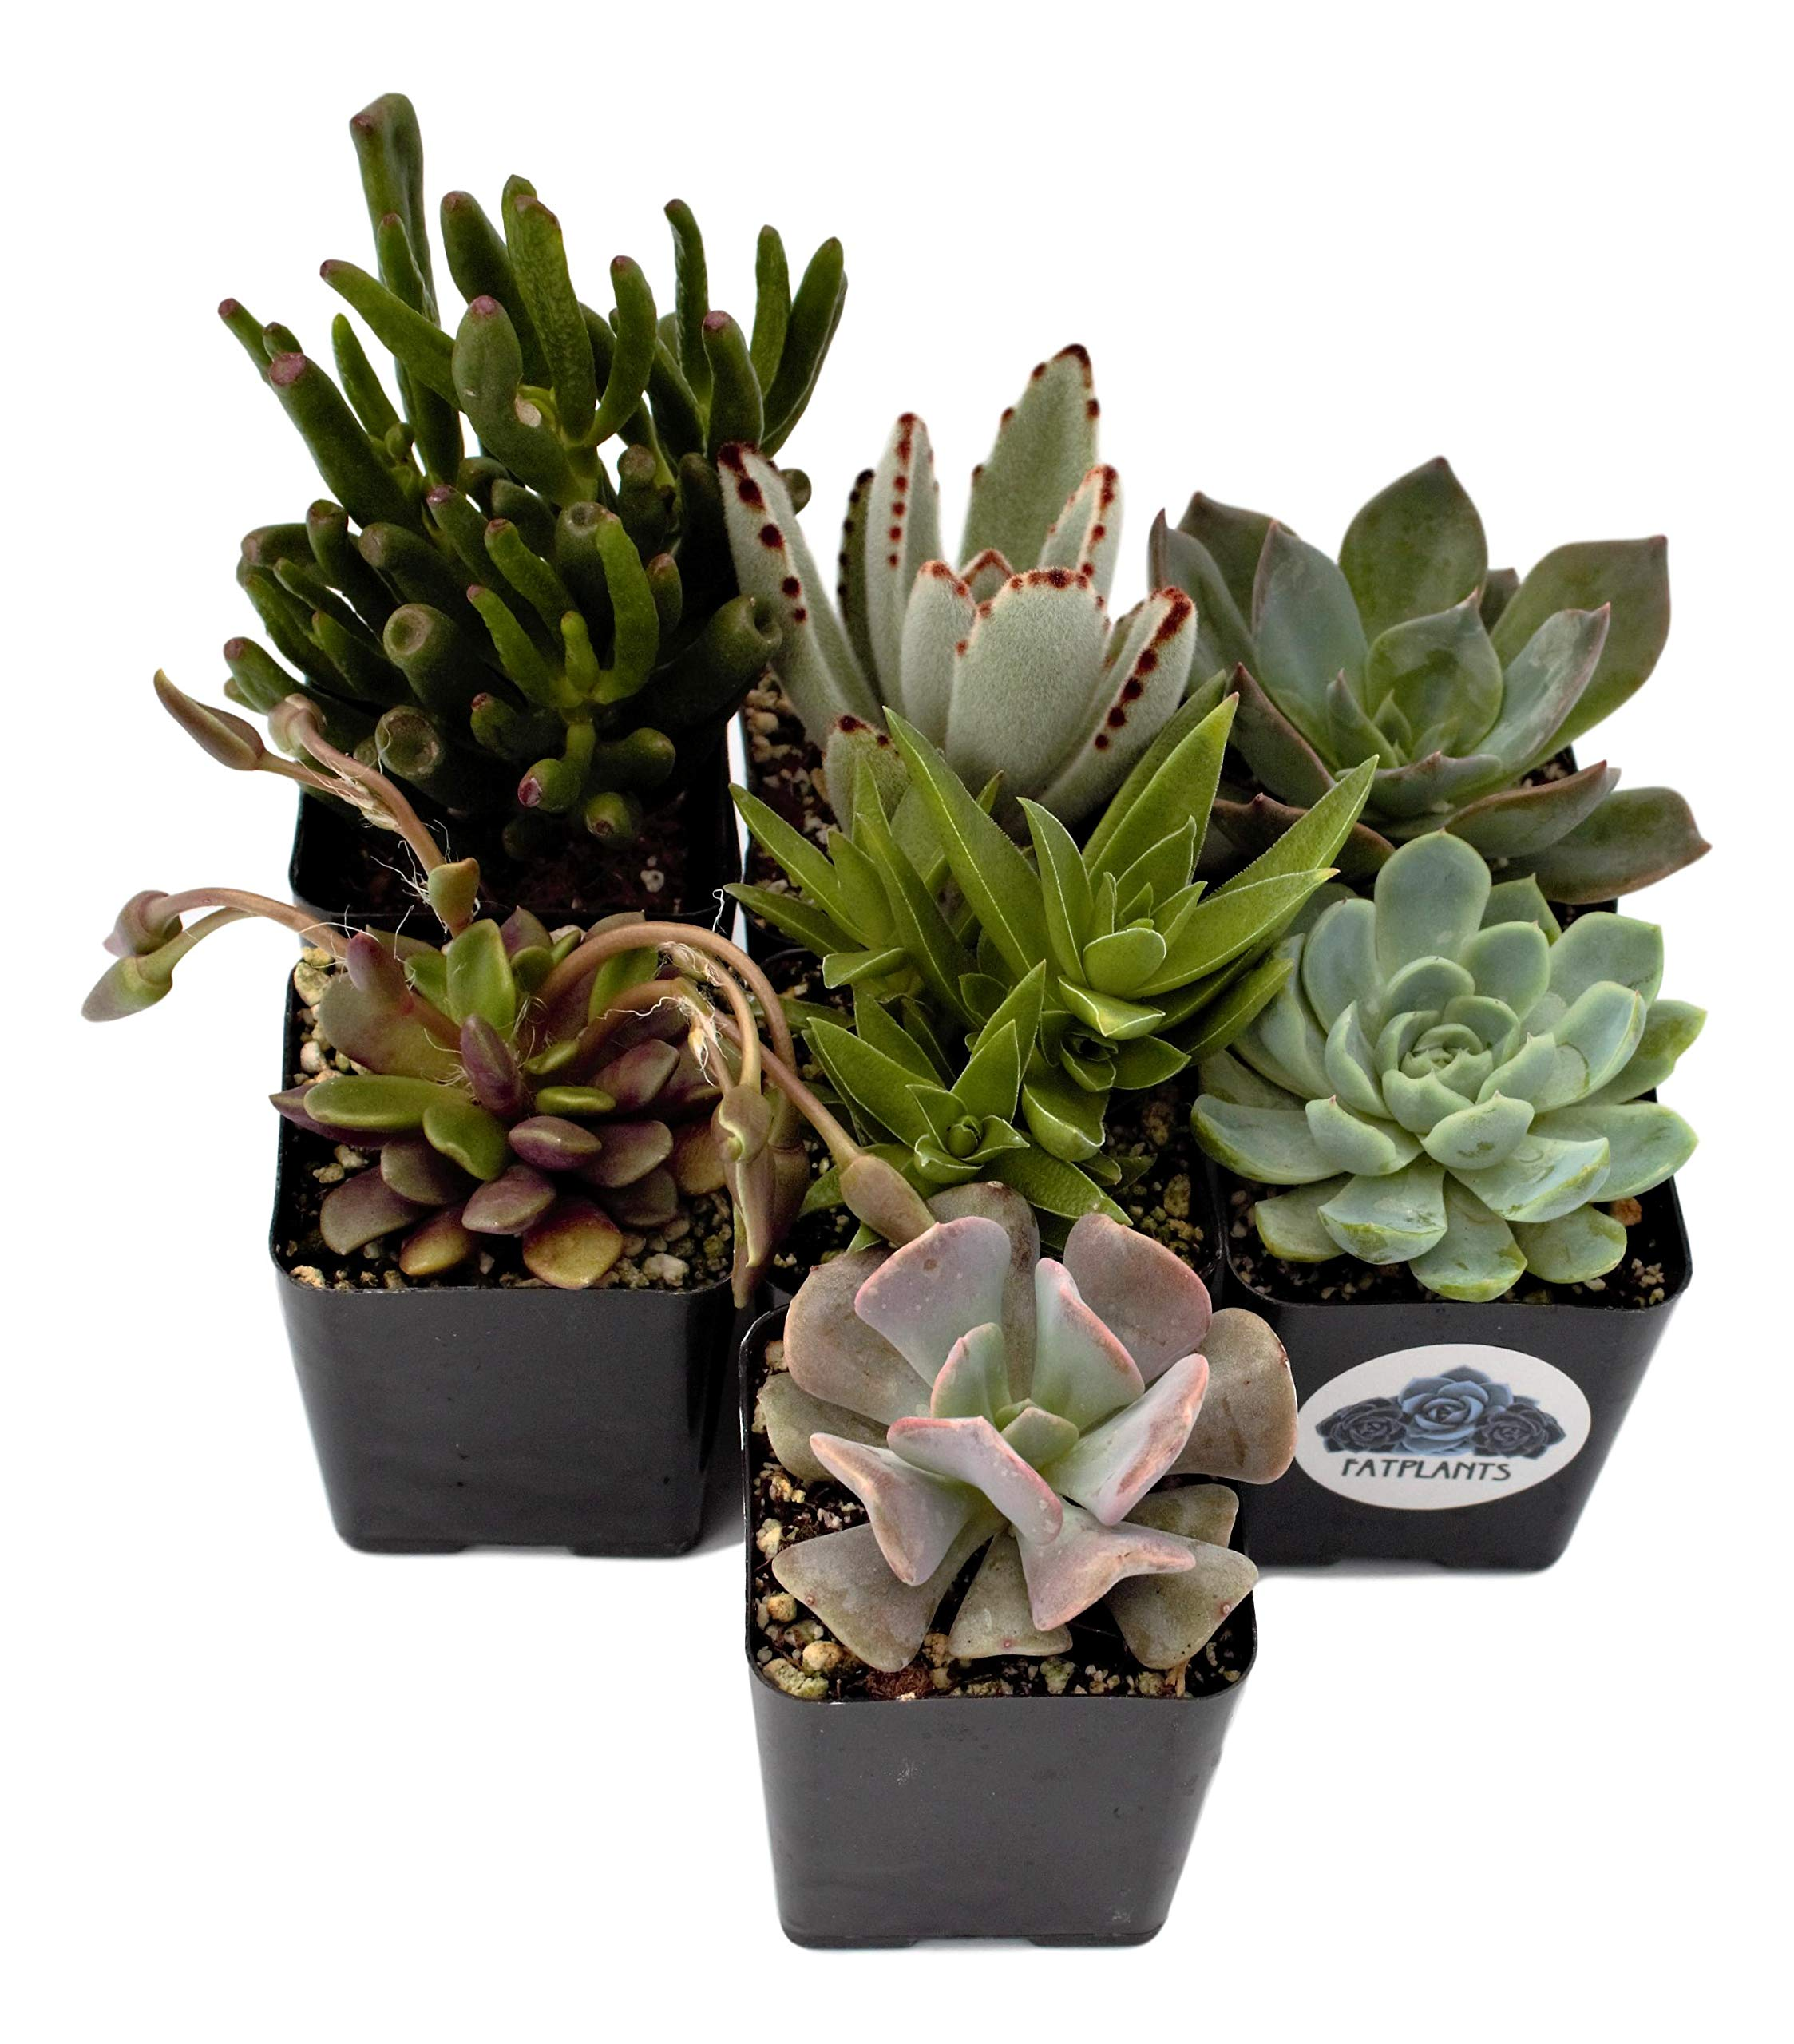 Fat Plants San Diego Premium Succulent Plant Variety Package. Live Indoor Succulents Rooted in Soil in a Plastic Growers Pot (7)